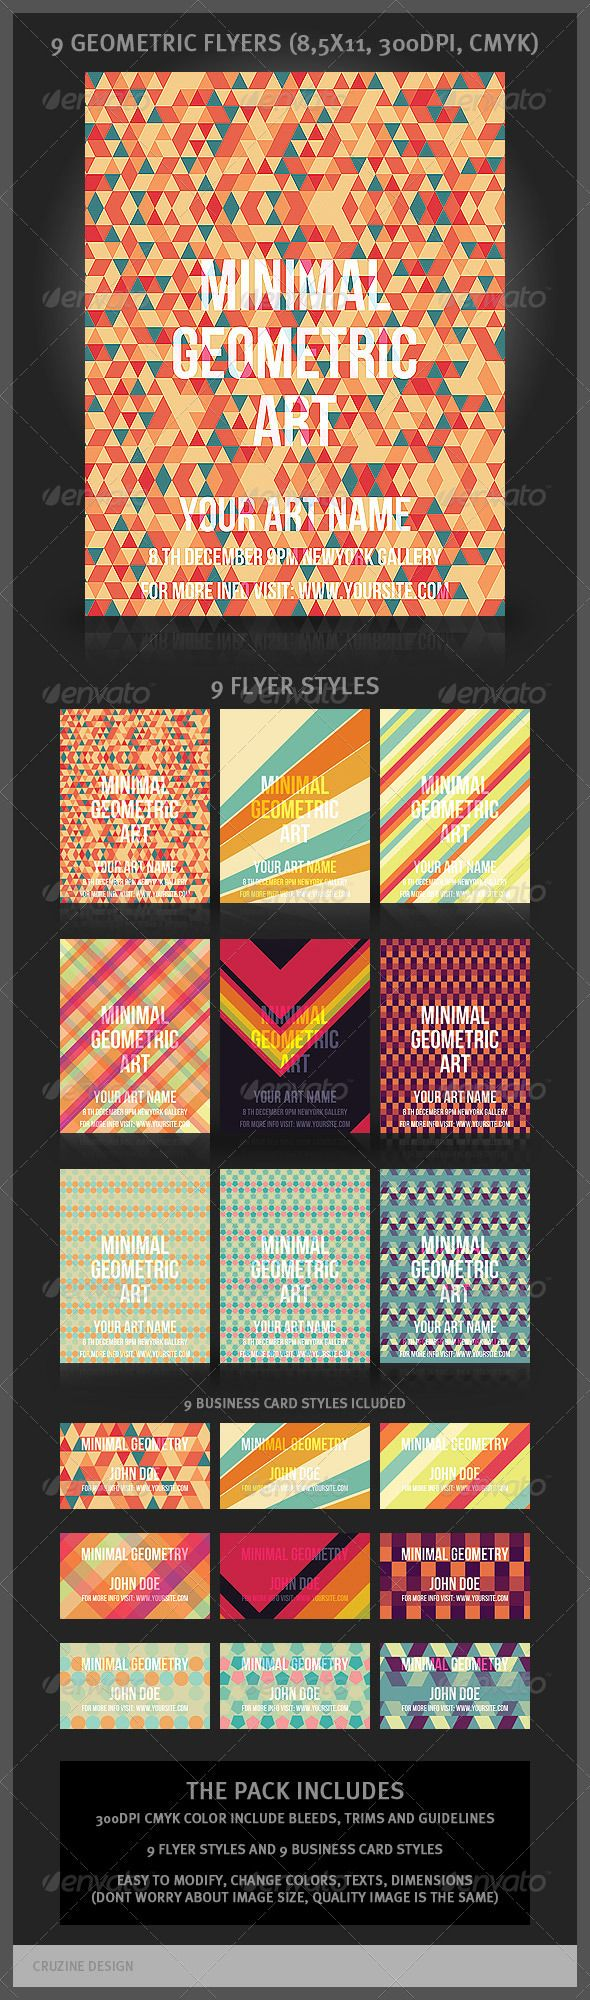 9 Geometric Flyers and Business Cards A modern and unique flyers, posters, invitations design for your next project. The final package you download includes 9 flyer styles and 9 business card styles. For any help regarding this file, please feel free to contact me through my profile page and I'll be glad to offer support. http://startupstacks.com/print-templates/9-geometric-flyers-business-cards.html - free download